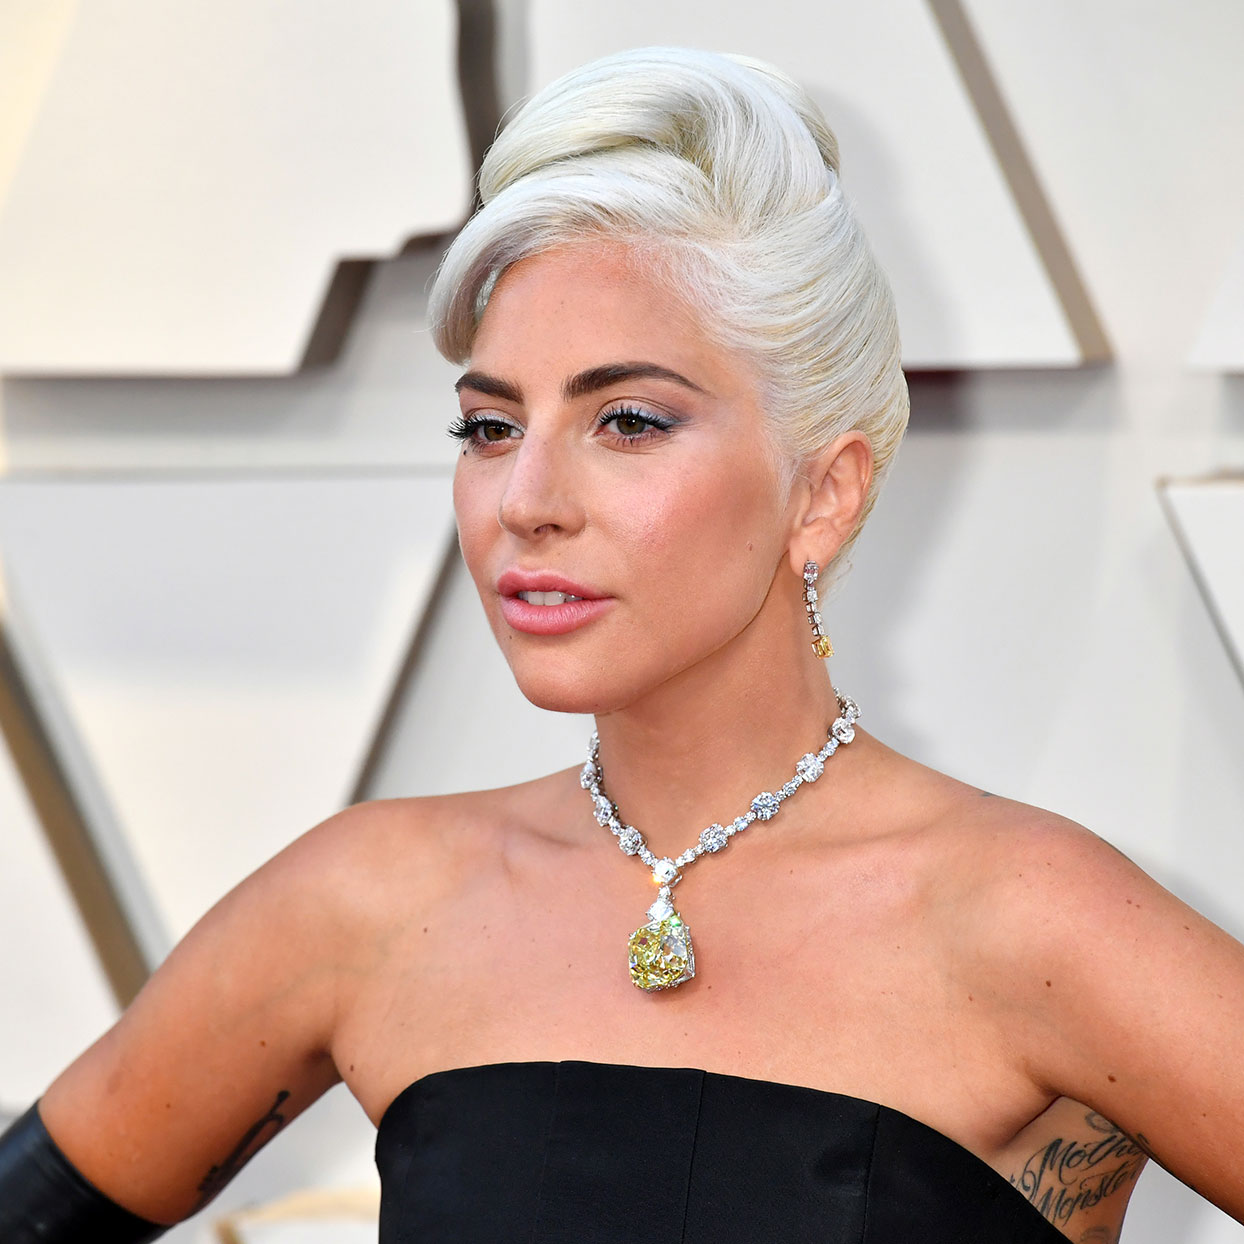 A photograph of Lady Gaga at the Academy Awards: HOLLYWOOD, CA - FEBRUARY 24: Lady Gaga attends the 91st Annual Academy Awards at Hollywood and Highland on February 24, 2019 in Hollywood, California. (Photo by Jeff Kravitz/FilmMagic)